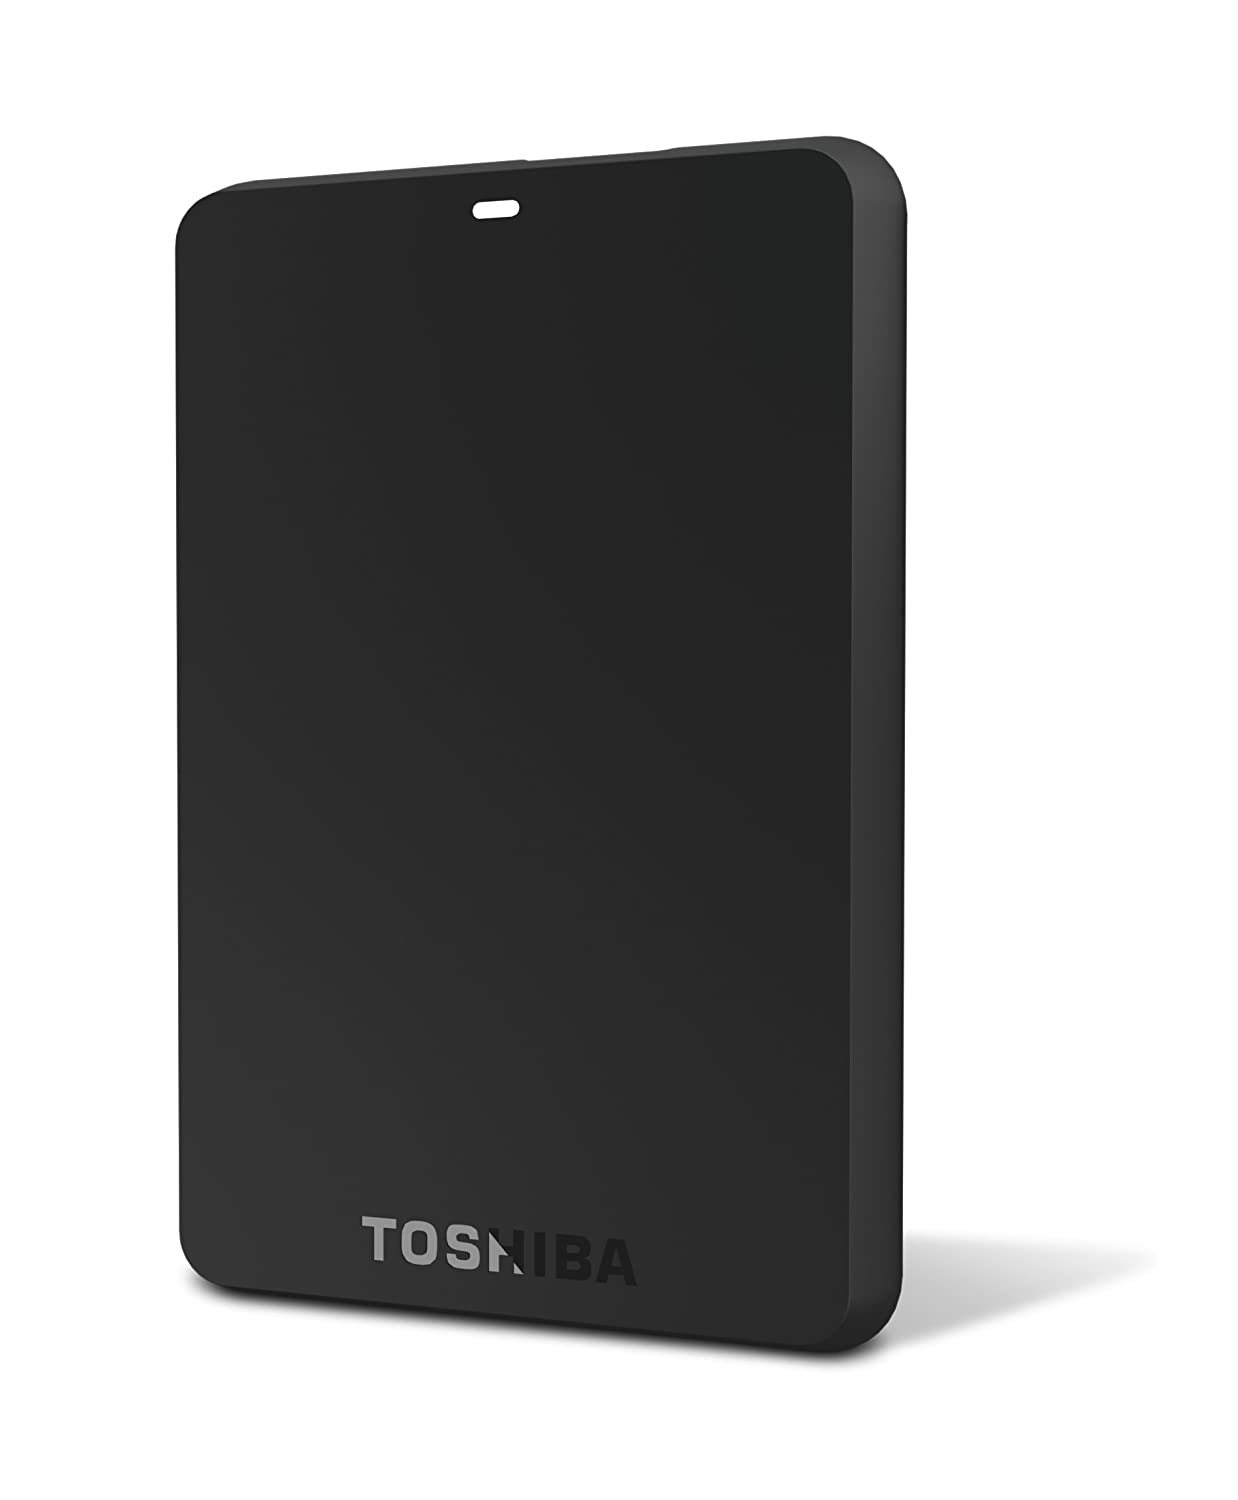 Toshiba Canvio Basics Portable Hard Drive Review